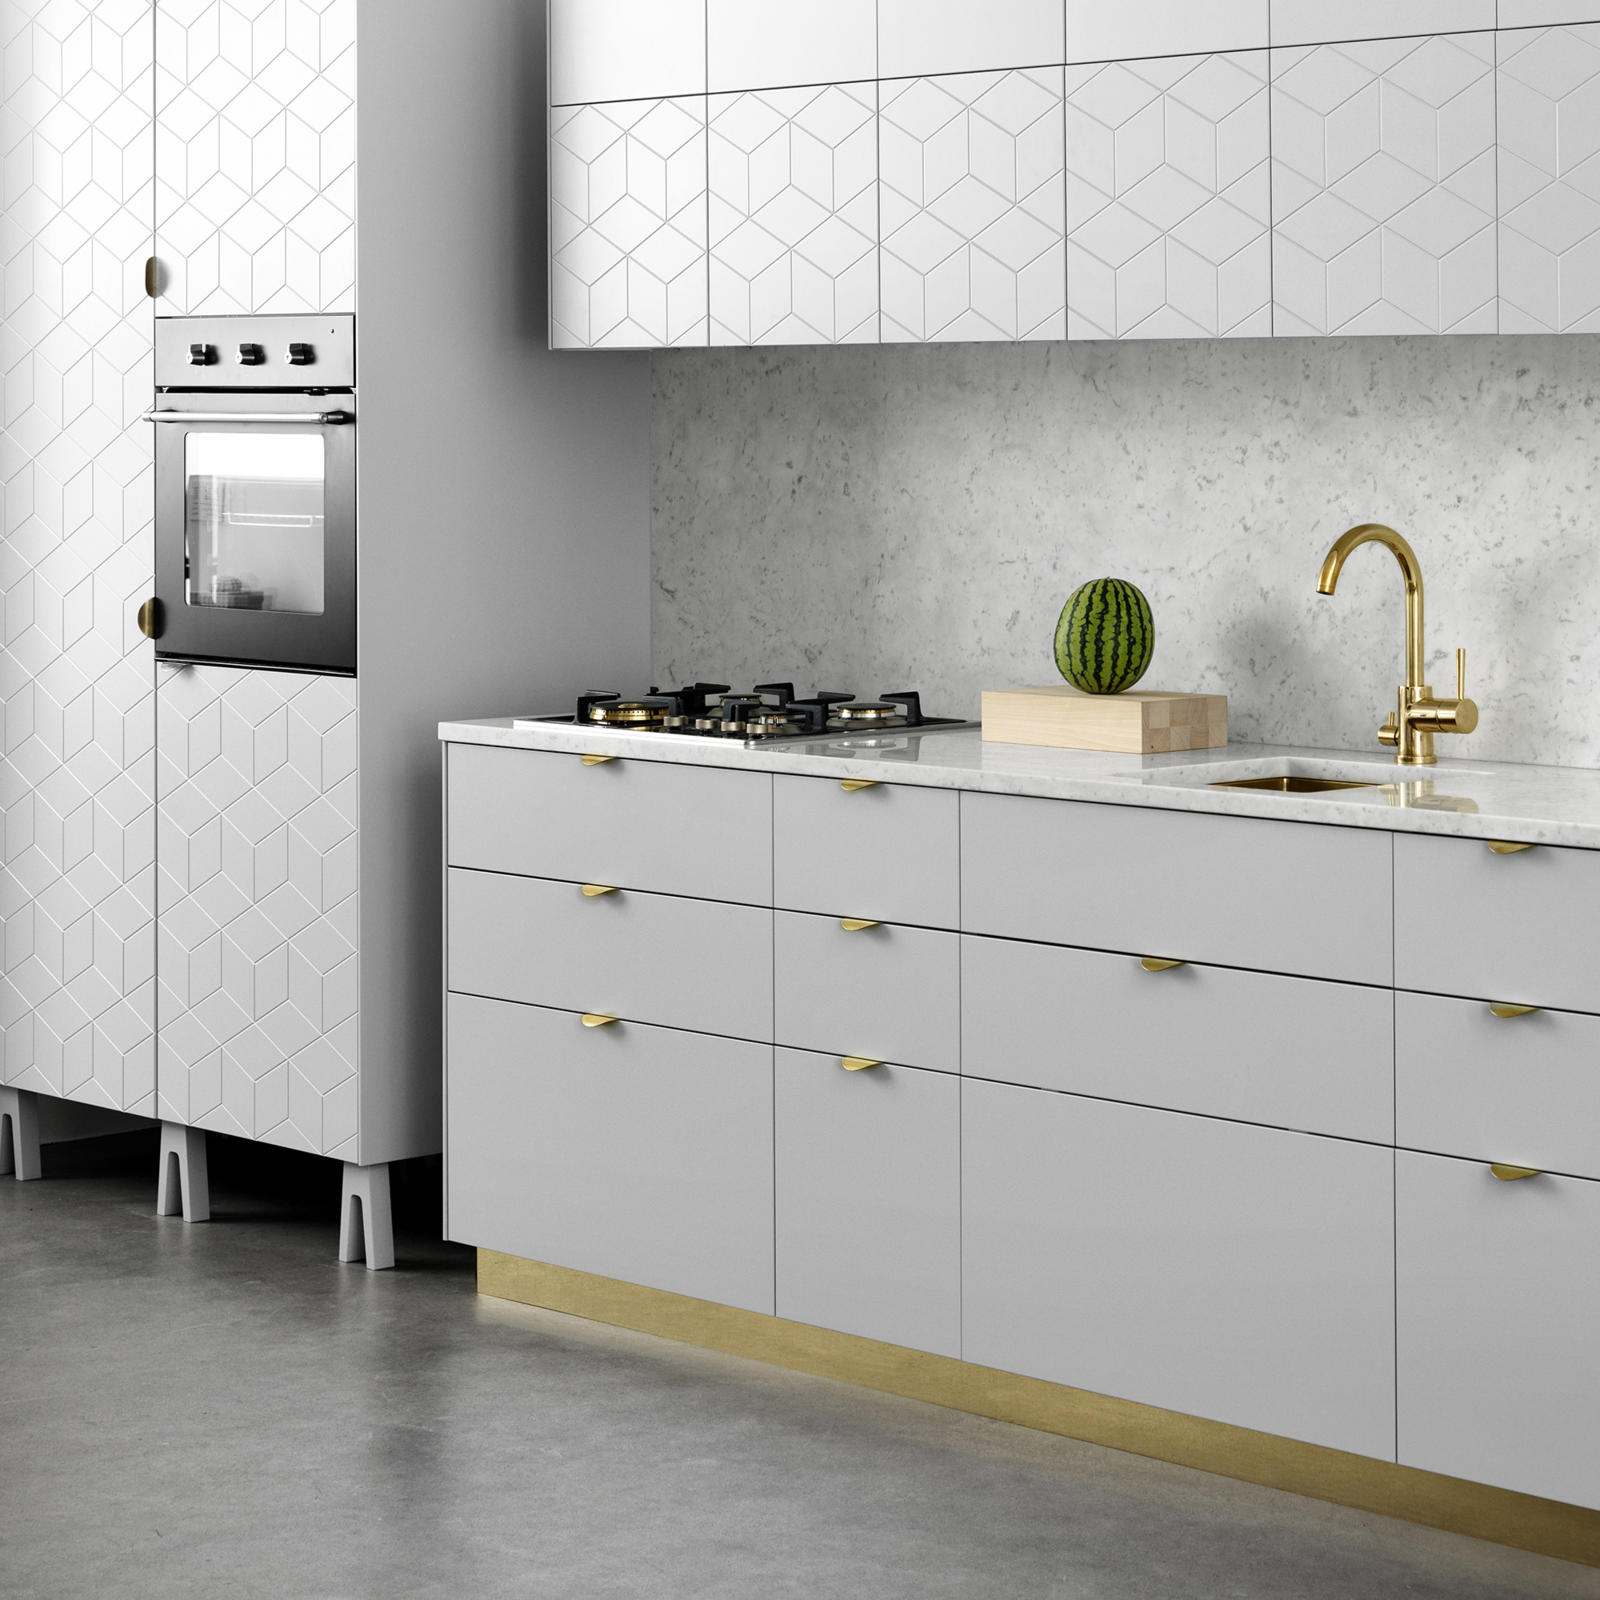 Kitchen built from Ikea's Metod frames, with light grey furniture legs and a plinth in brass